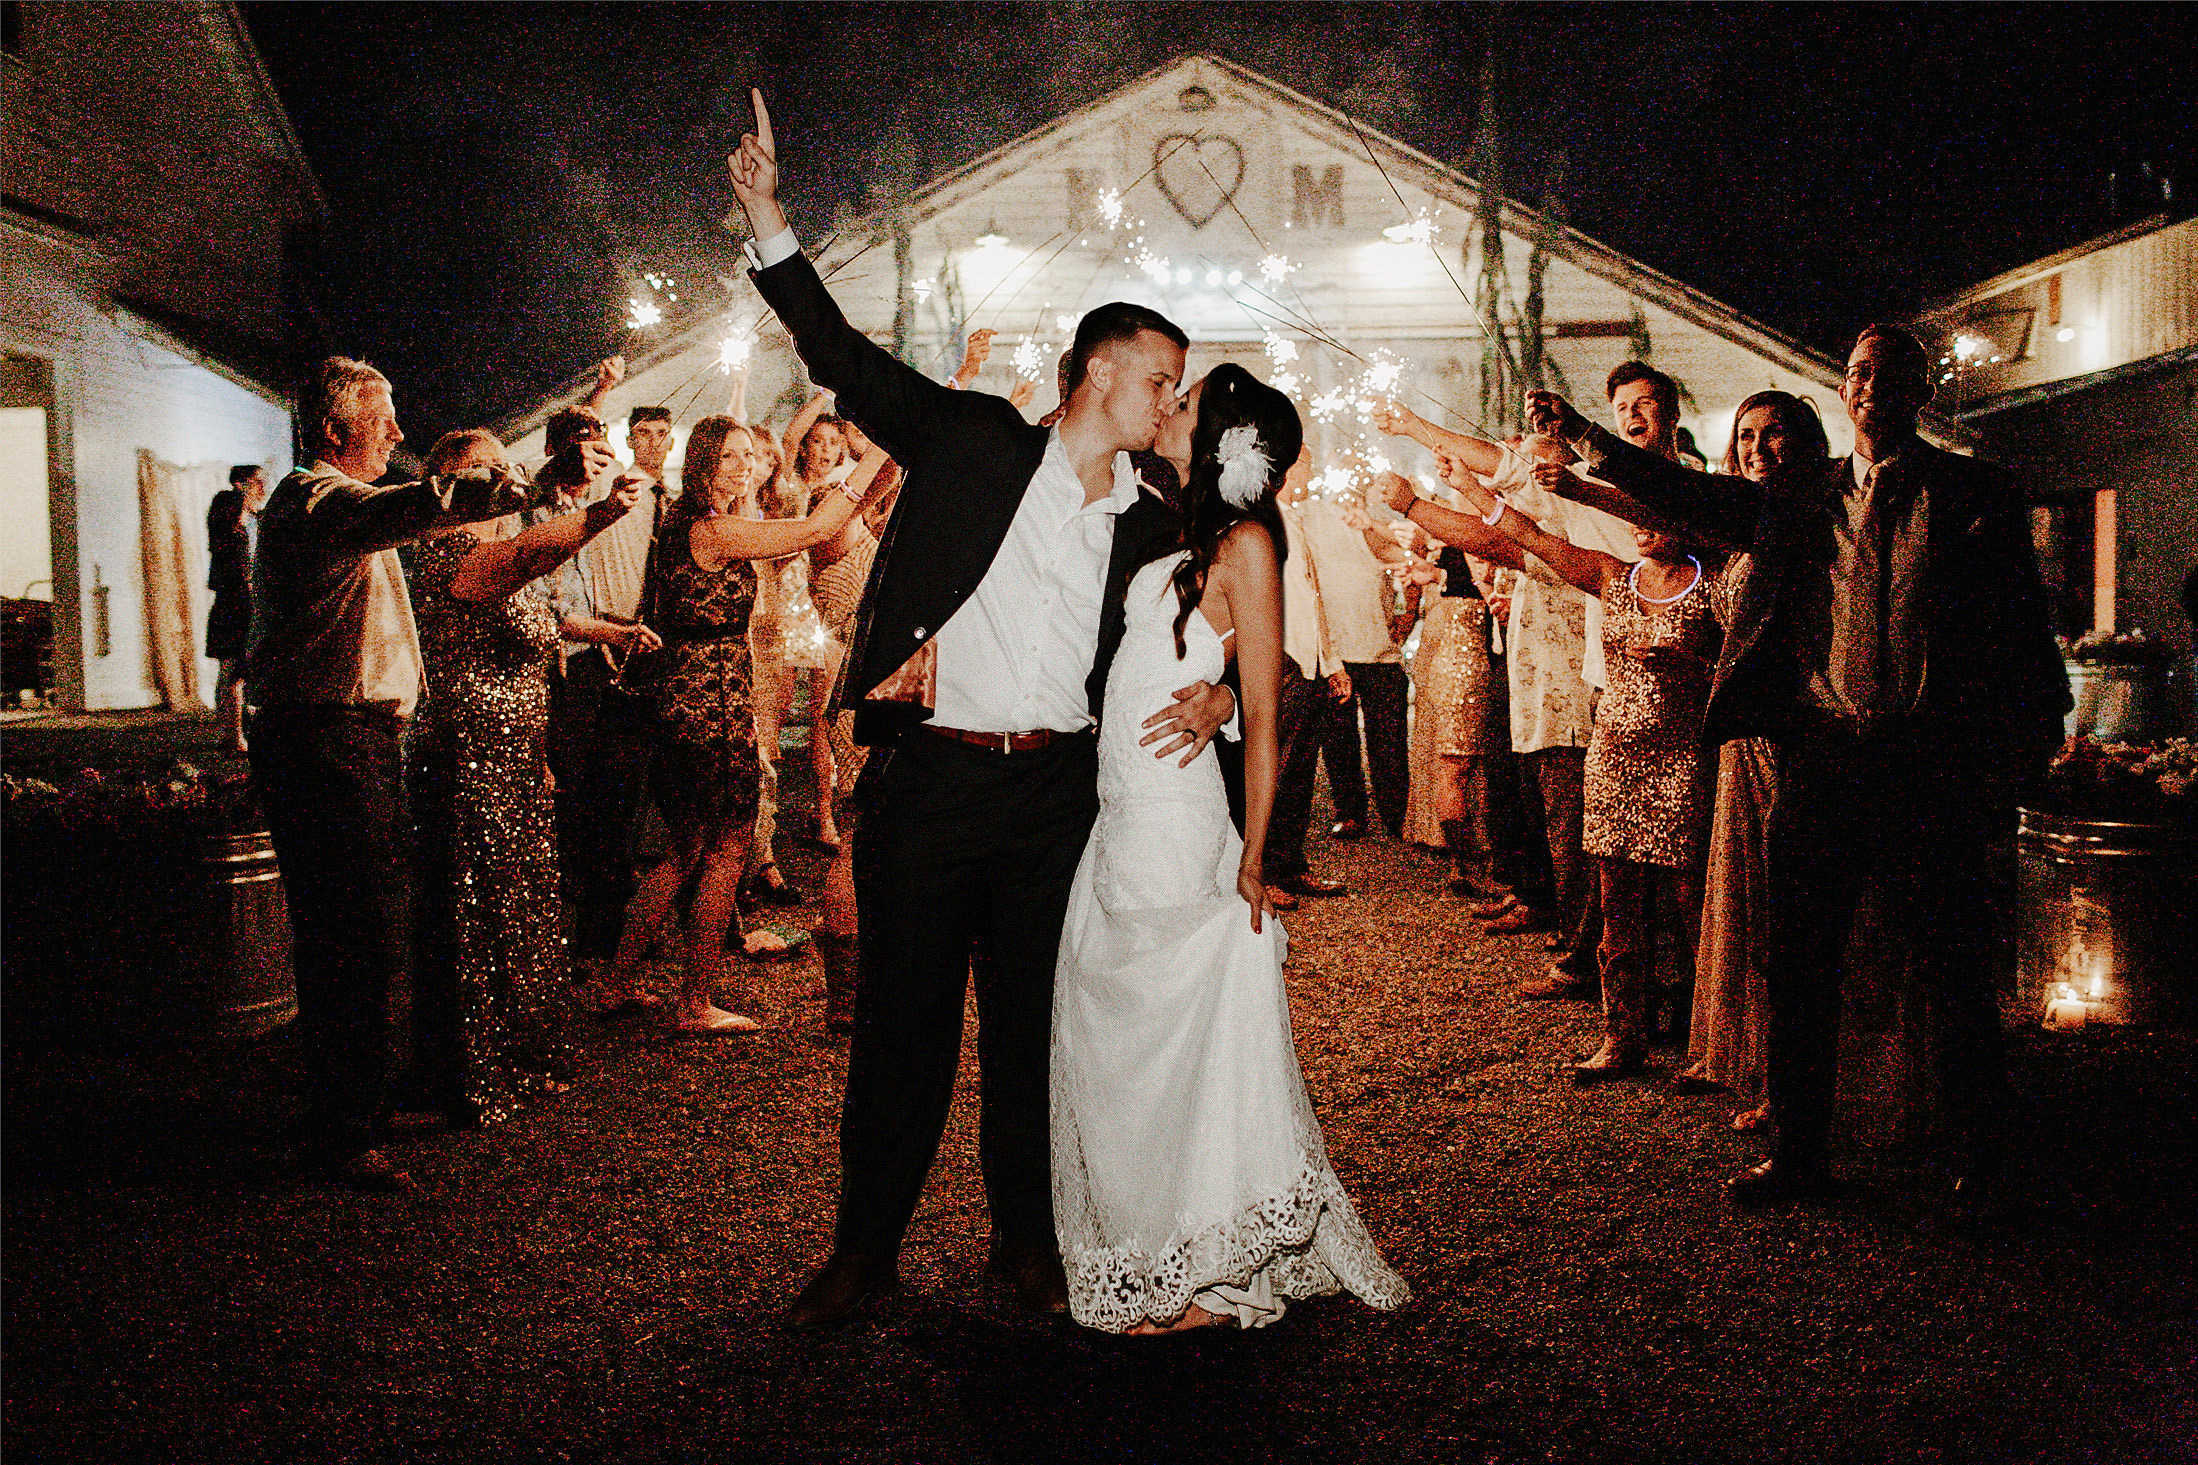 timeless wedding photos couple sparklers send off